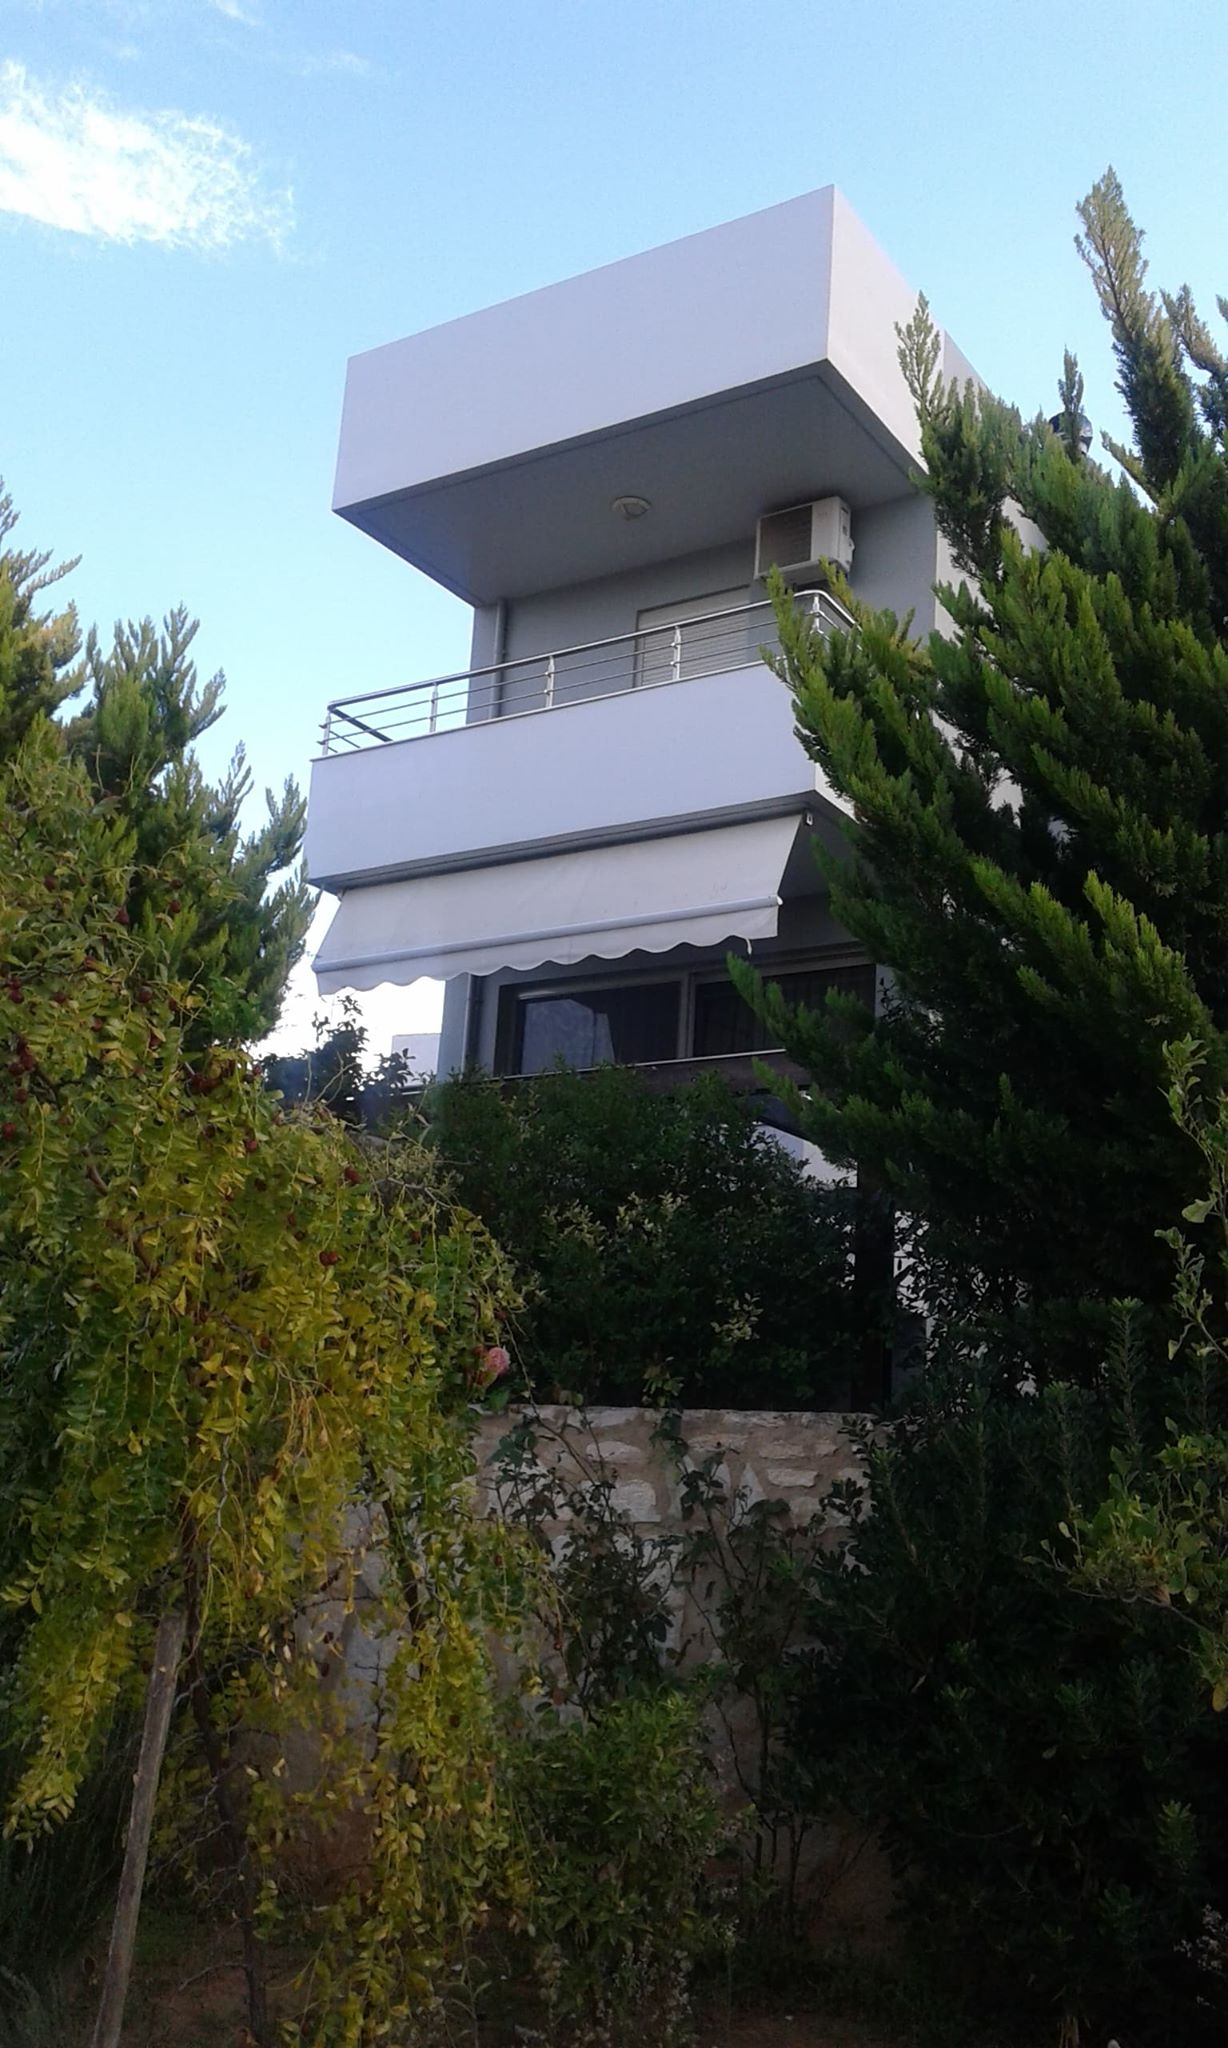 DETACHED HOUSE IN KALLITHEA OF HERAKLION